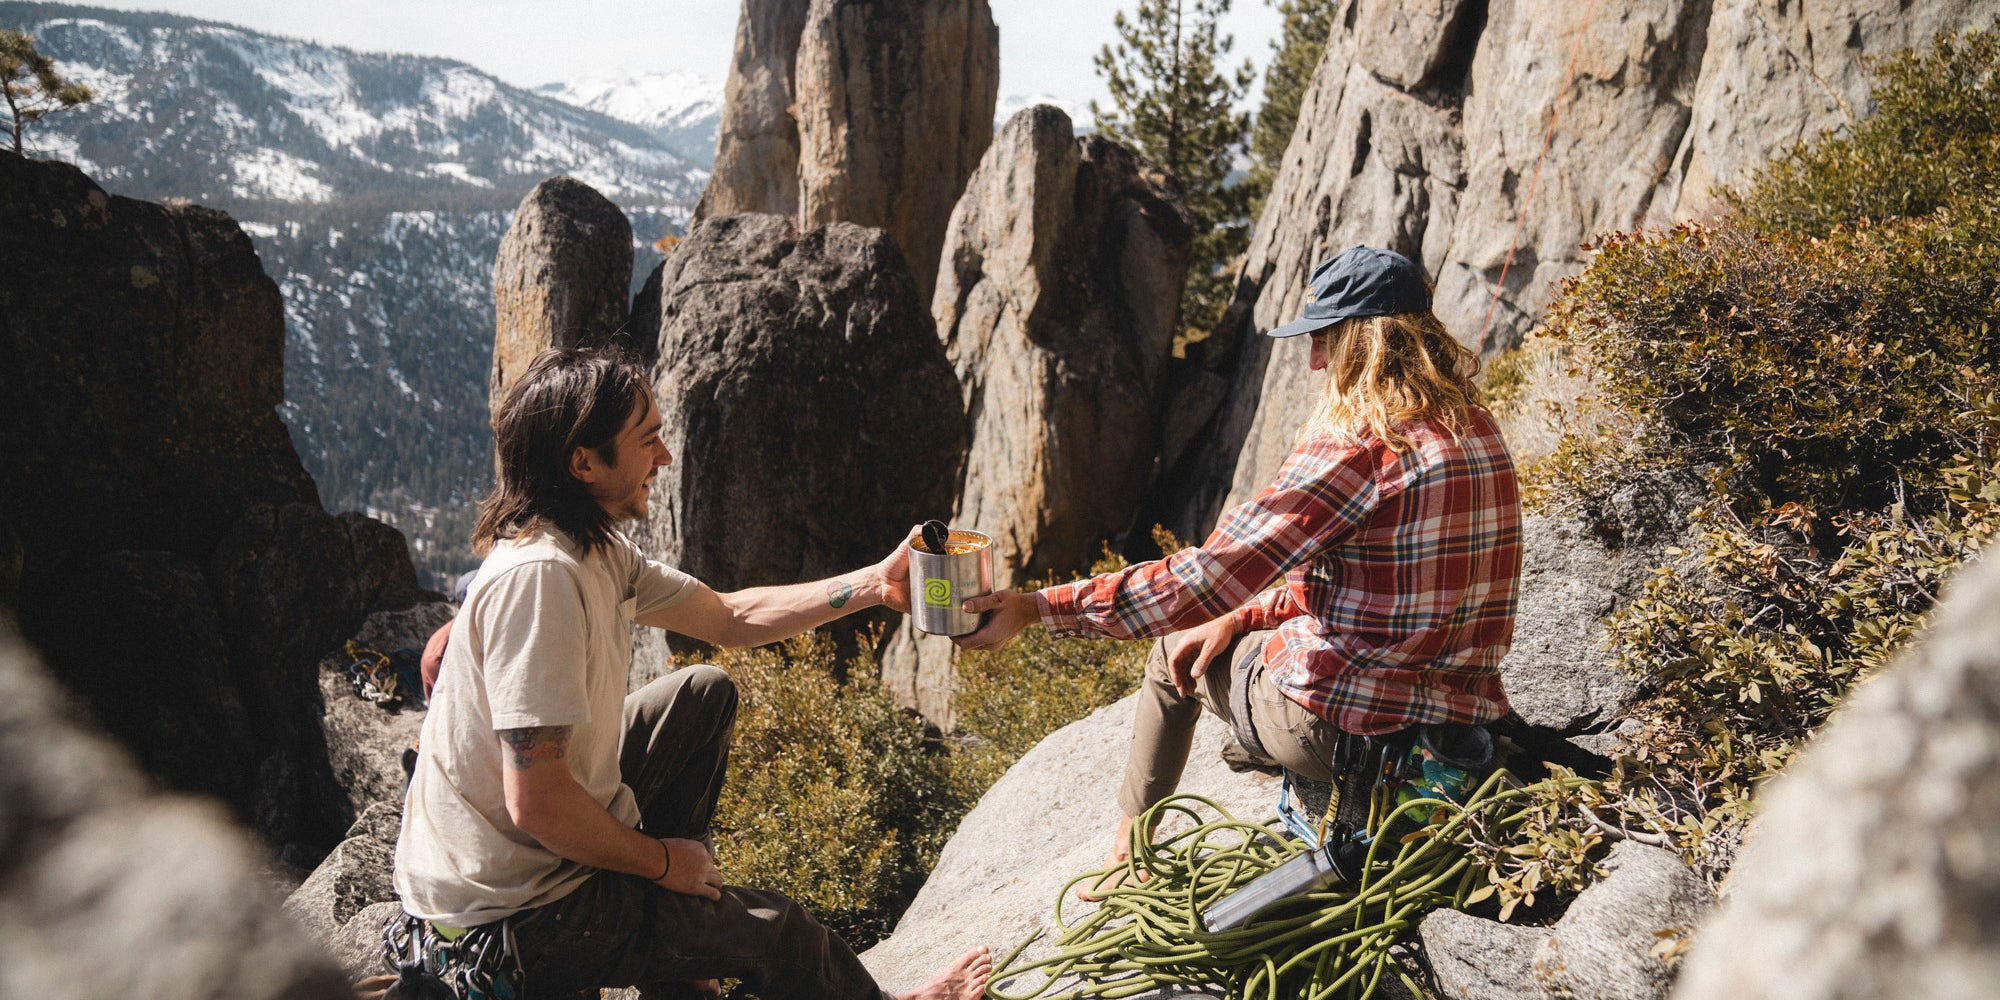 Klean is proud to work with Leave No Trace as a key partner